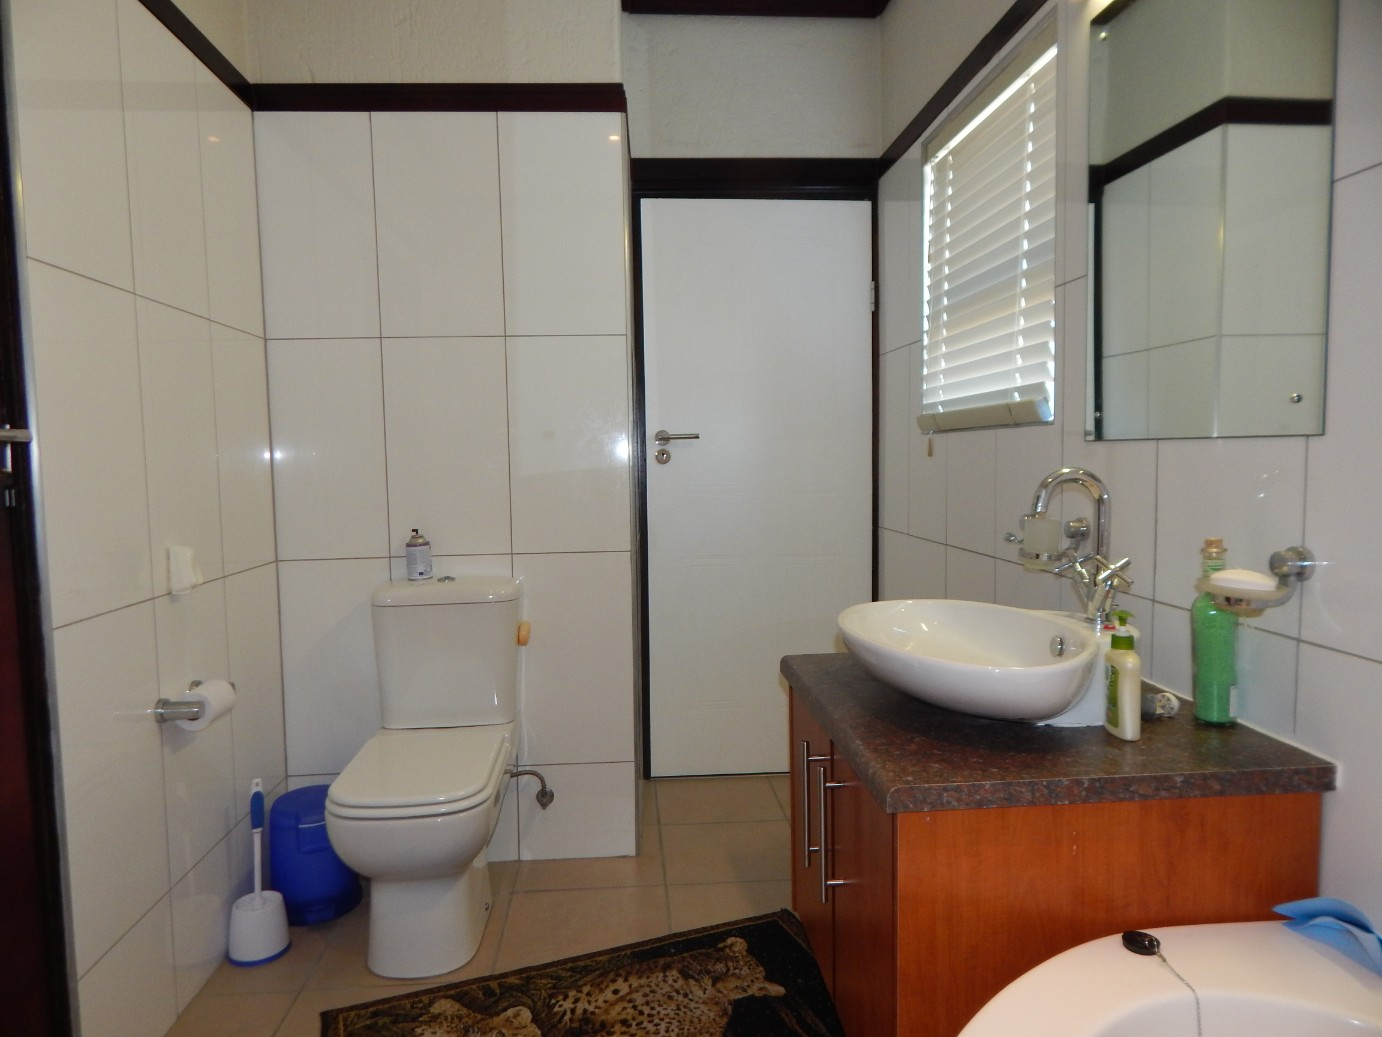 3 Bedroom Apartment for sale in Diaz Beach ENT0043723 : photo#27